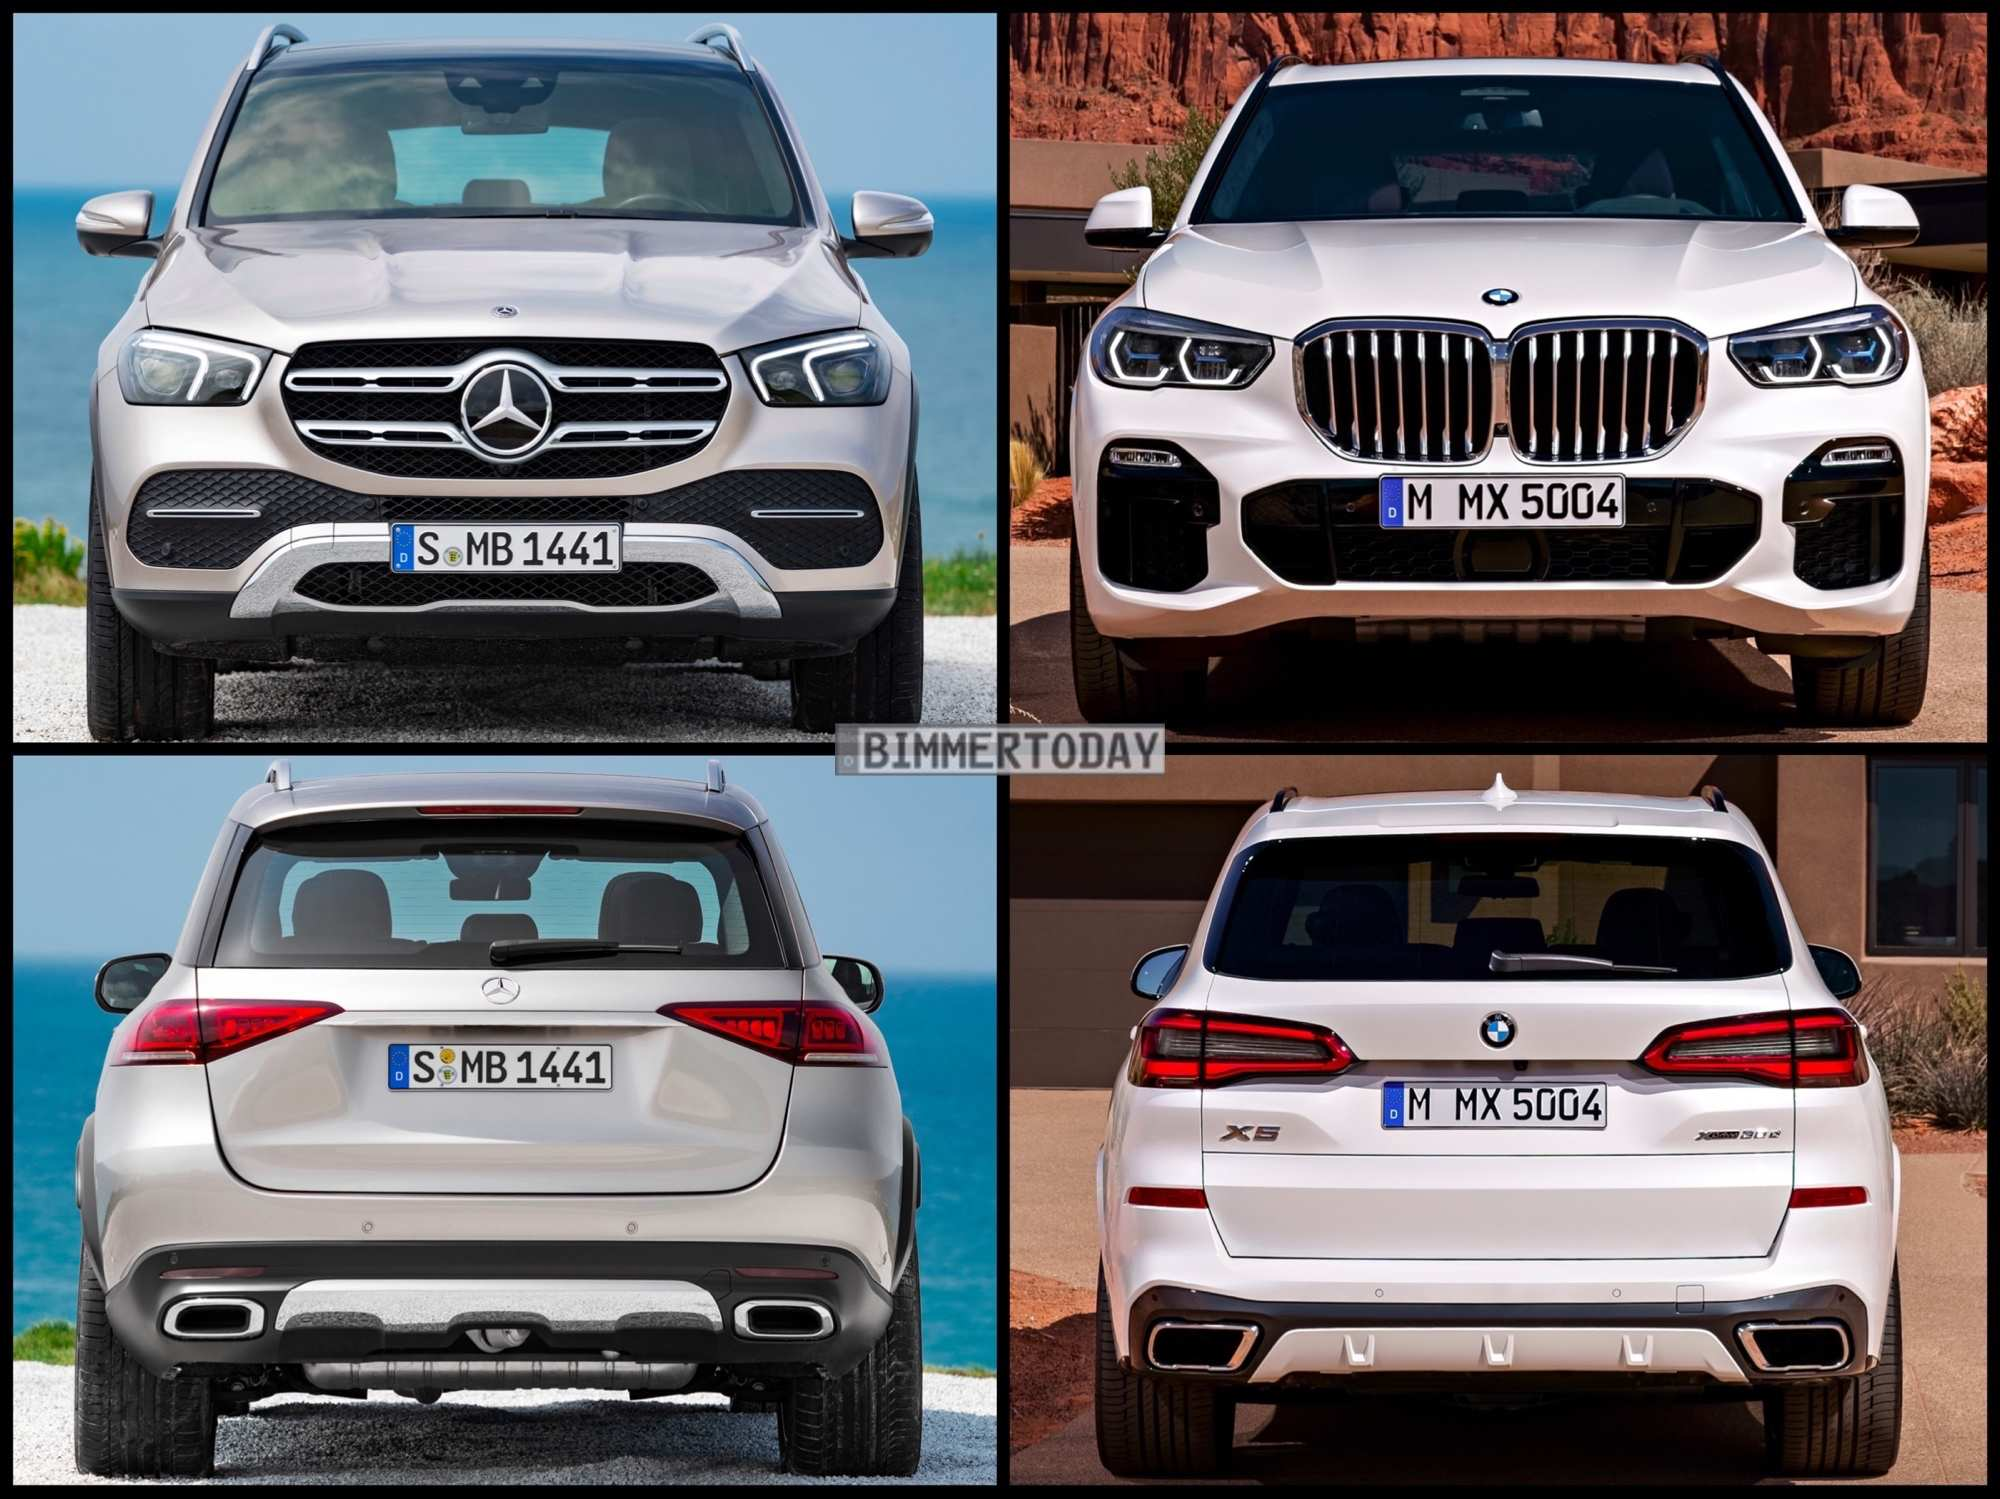 78 Gallery of 2020 Gle 350 Vs BMW X5 Pricing with 2020 Gle 350 Vs BMW X5